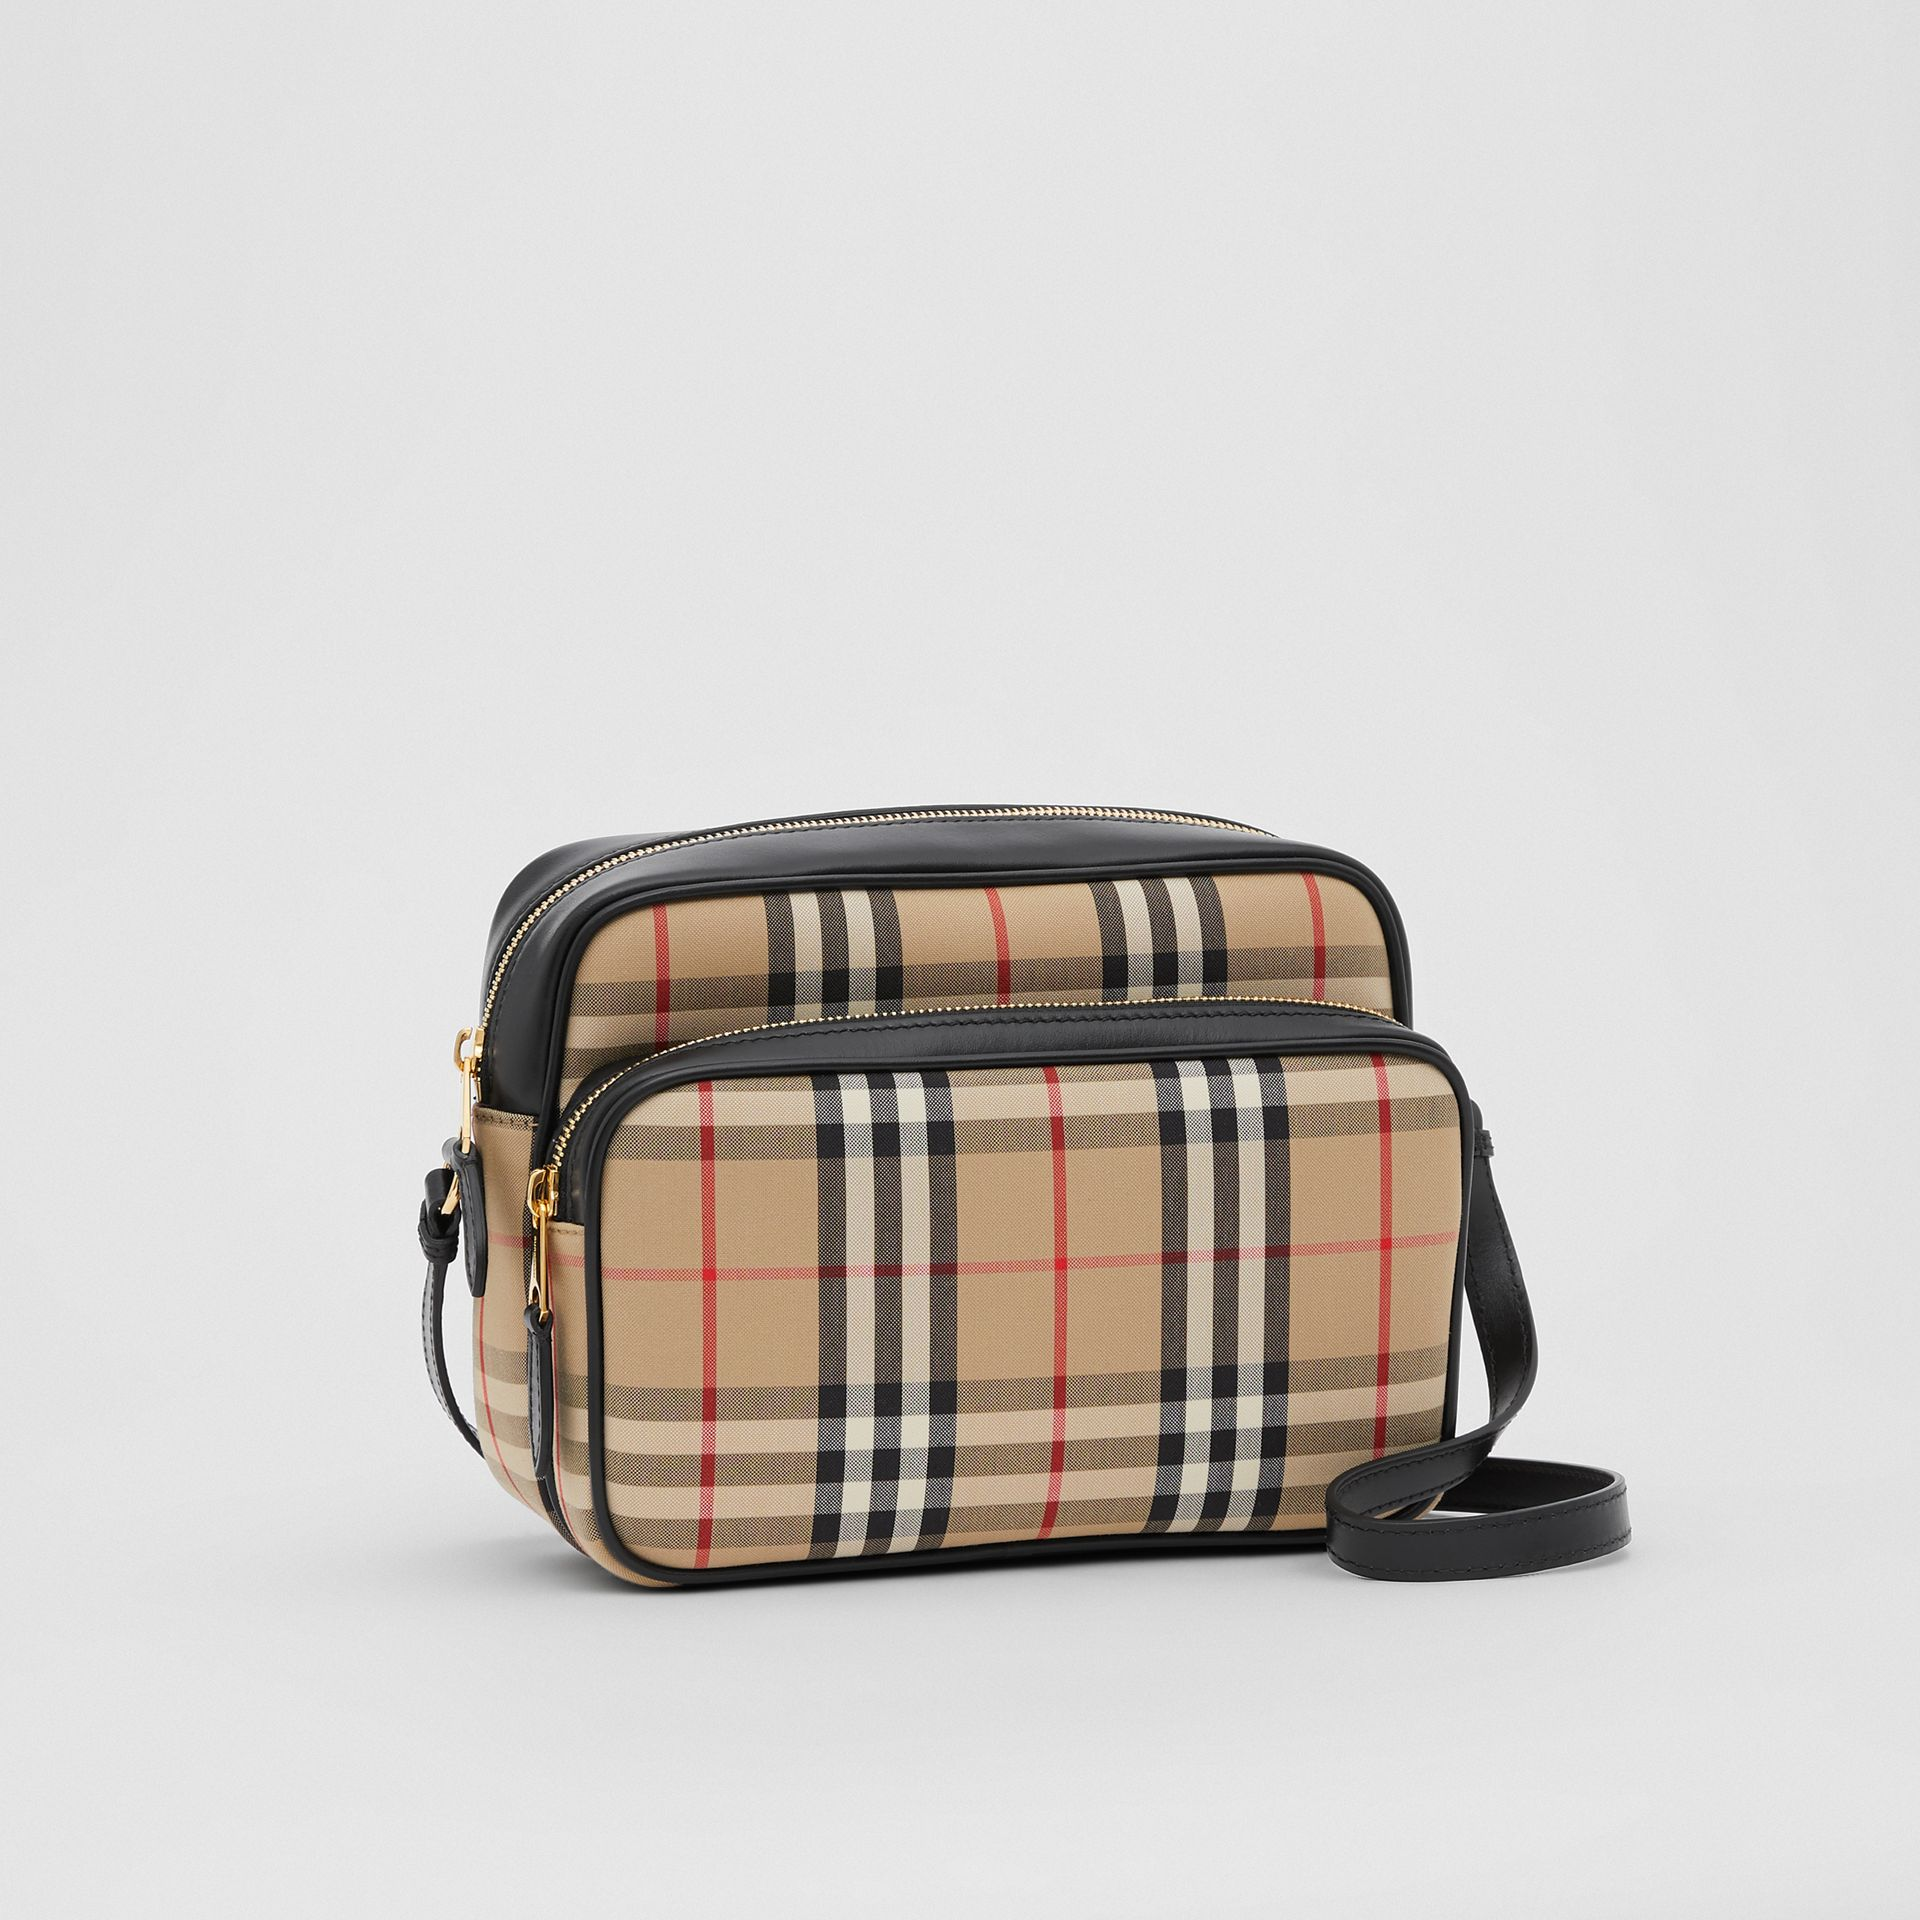 Medium Vintage Check and Leather Camera Bag in Archive Beige - Women | Burberry Hong Kong S.A.R - gallery image 6